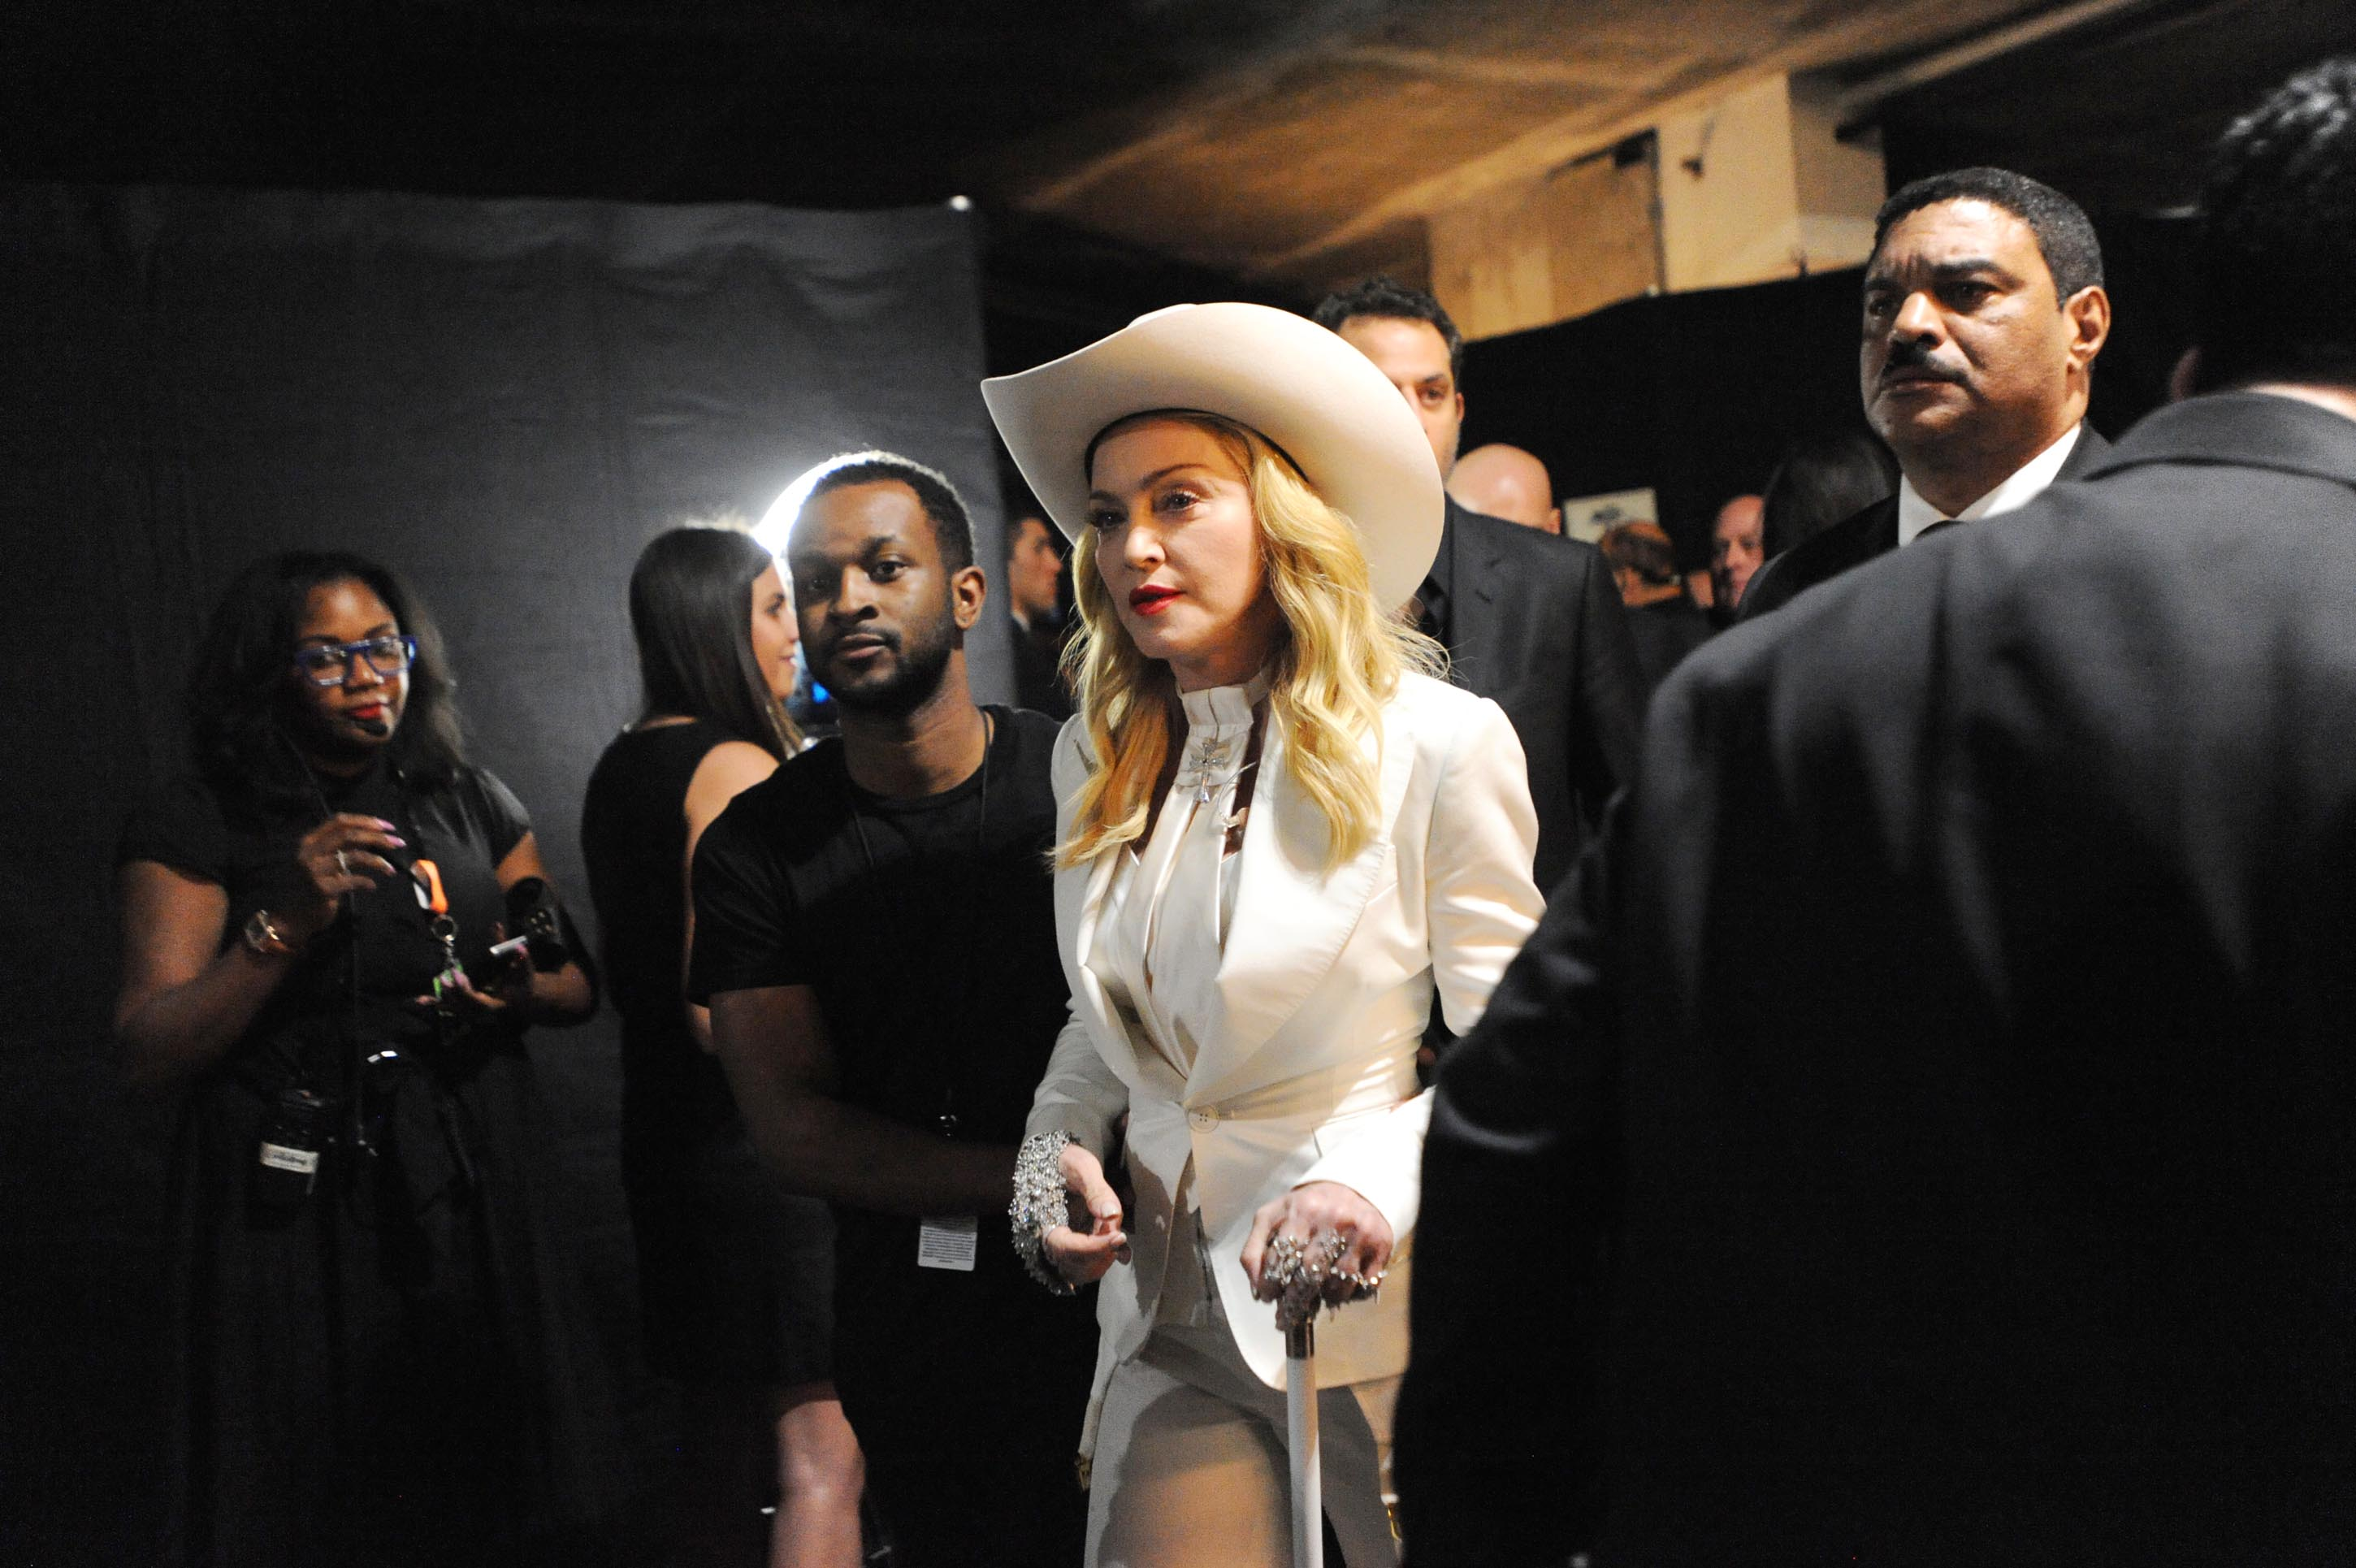 Image #: 26818660    Madonna backstage during the 56th Annual Grammy Awards in Los Angeles on January 26, 2014.     CBS/Heath